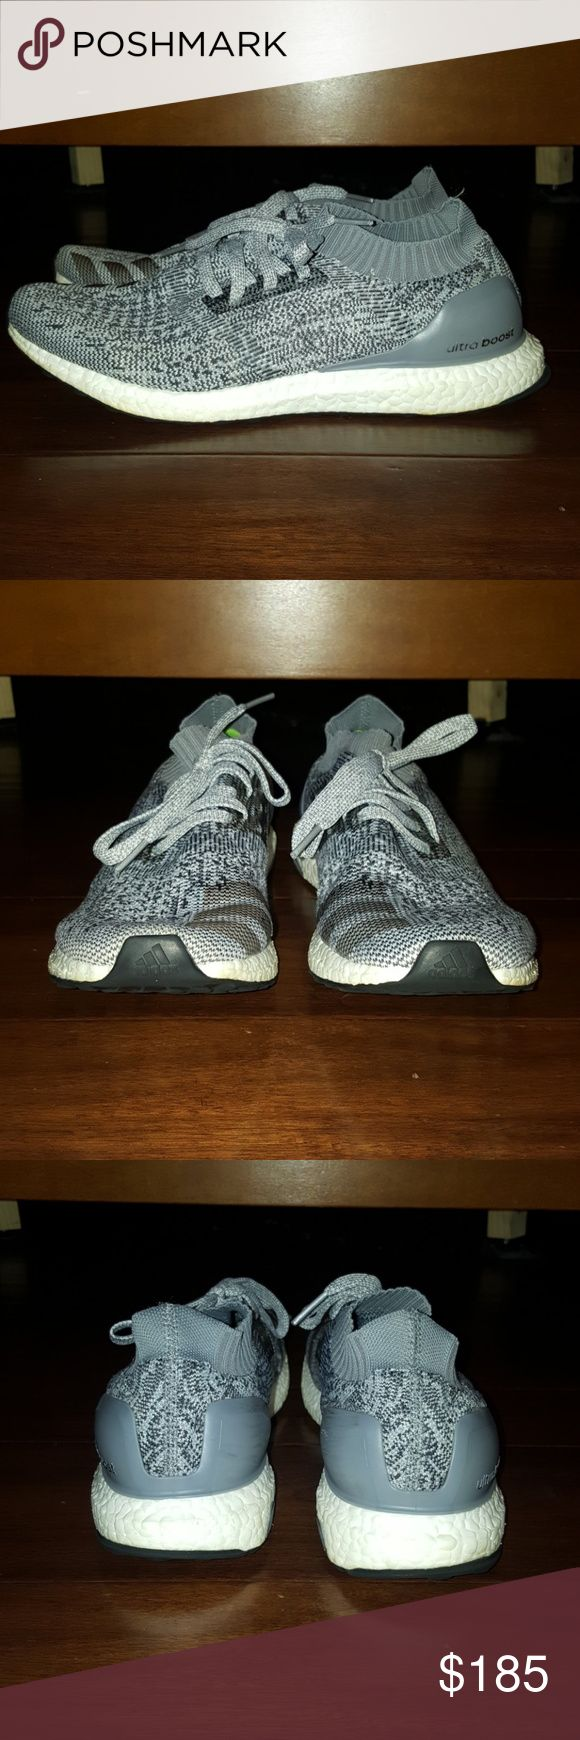 Adidas Ultra Boost Uncaged These are lightly used shoes. Almost perfect condition- you can see for yourself in the pictures. I took such good care of them. Selling bc I got a new pair of nmd's and don't wear these anymore. Has a little bit of natural oxidation on the bottom of the sole...a common occurrence with the boost technology..since it's on the bottom of the sole, you can't see it but I wanted to show it all anyways. adidas Shoes Sneakers